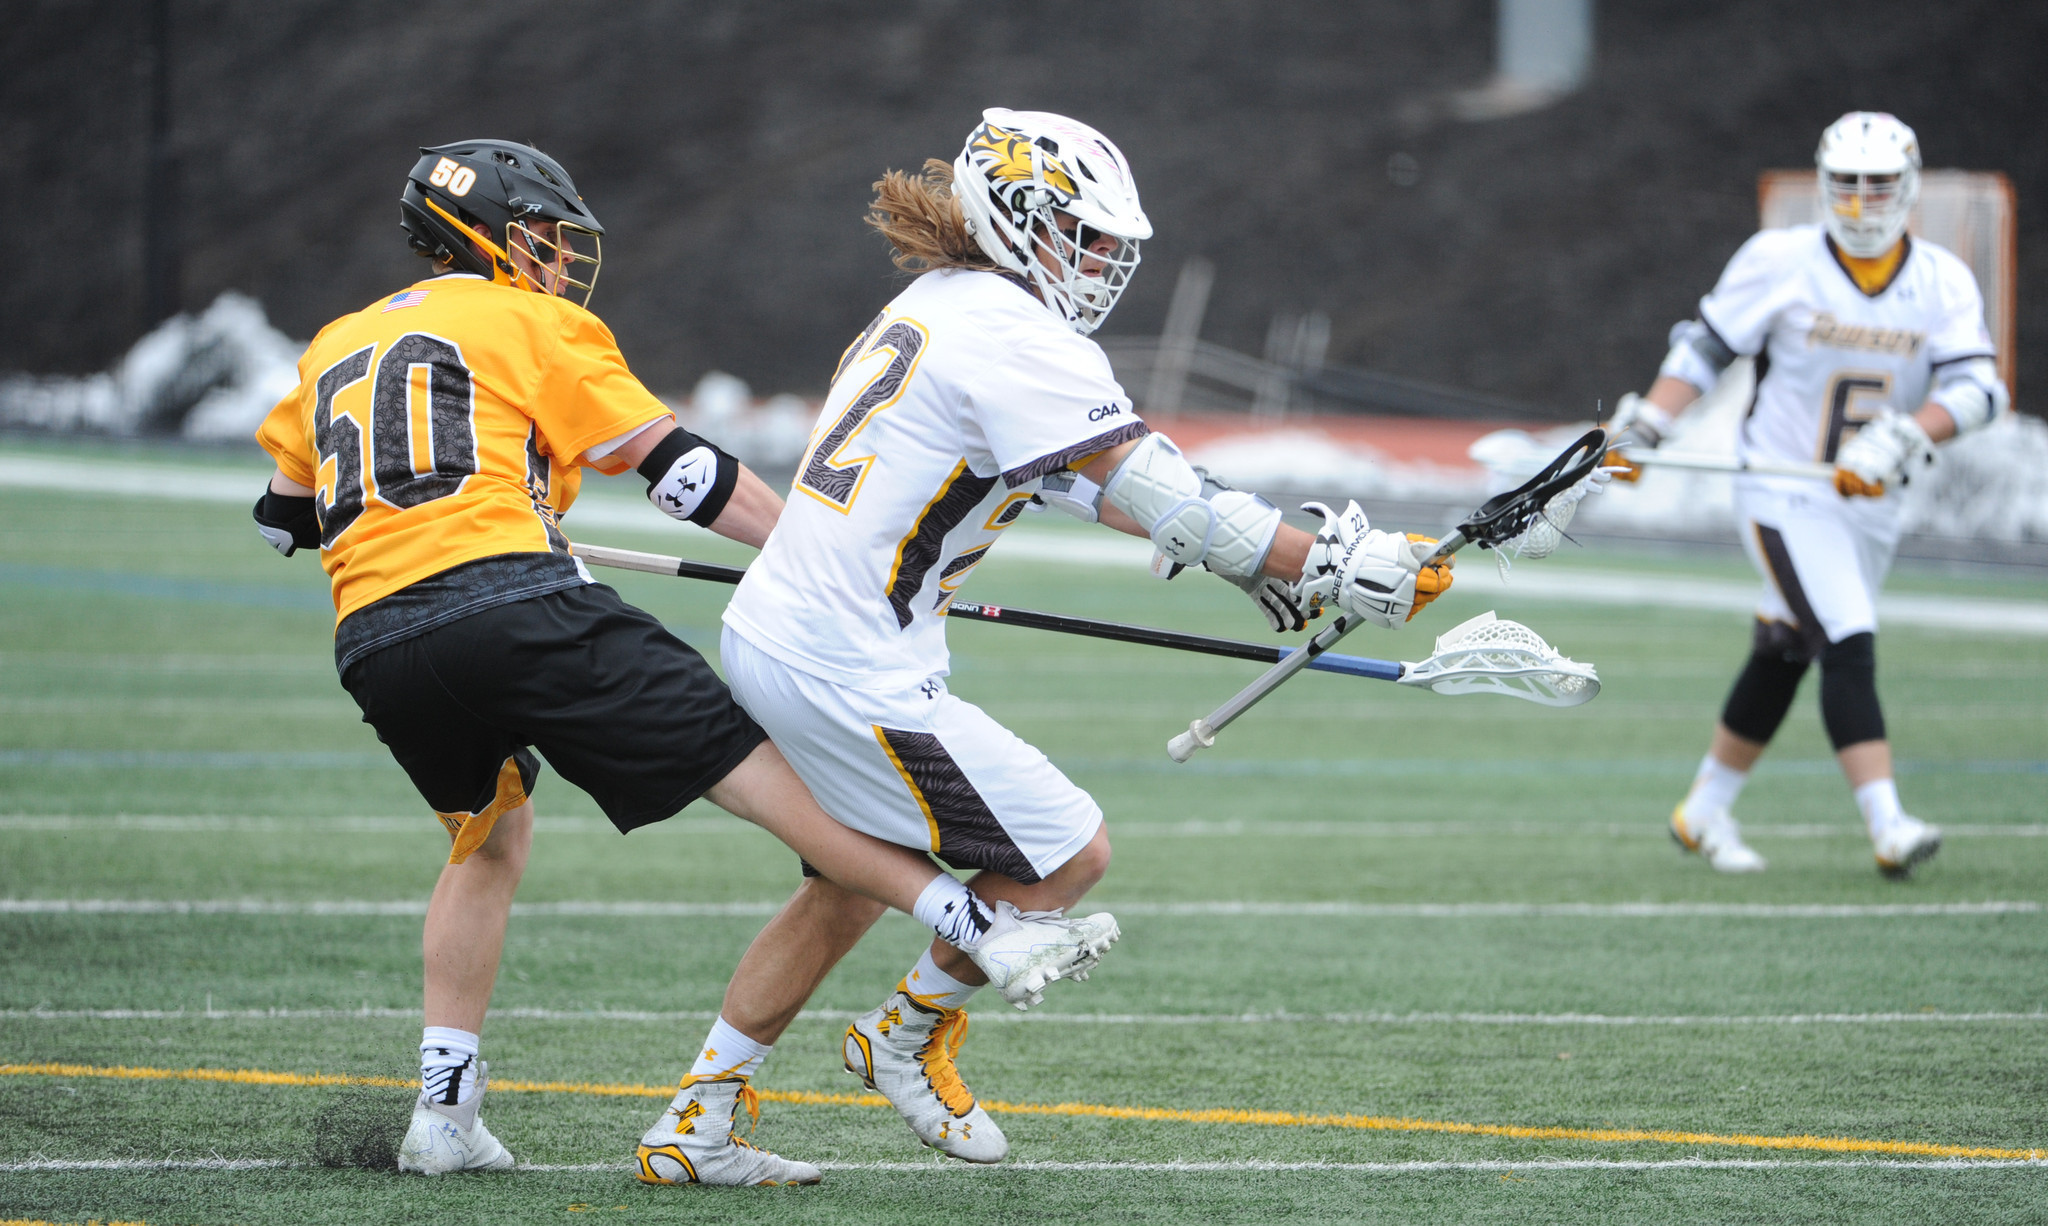 Towson's Ryan Drenner named CAA Co-Player of the Year in ...